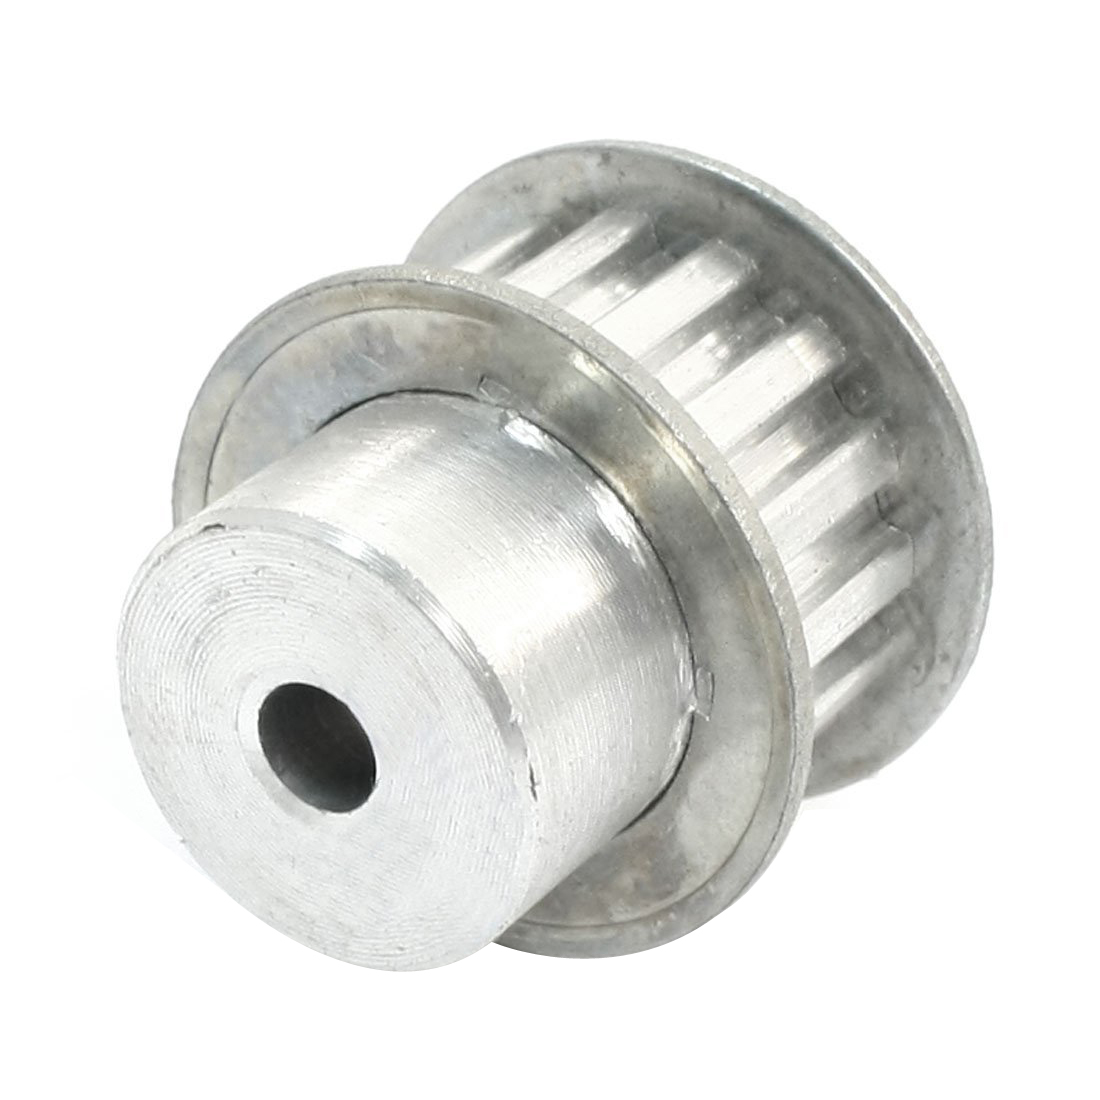 SHGO Hot 15Teeth 5mm Bore <font><b>XL</b></font> Type Aluminum Timing <font><b>Belt</b></font> <font><b>Pulley</b></font> for Stepper Motor image